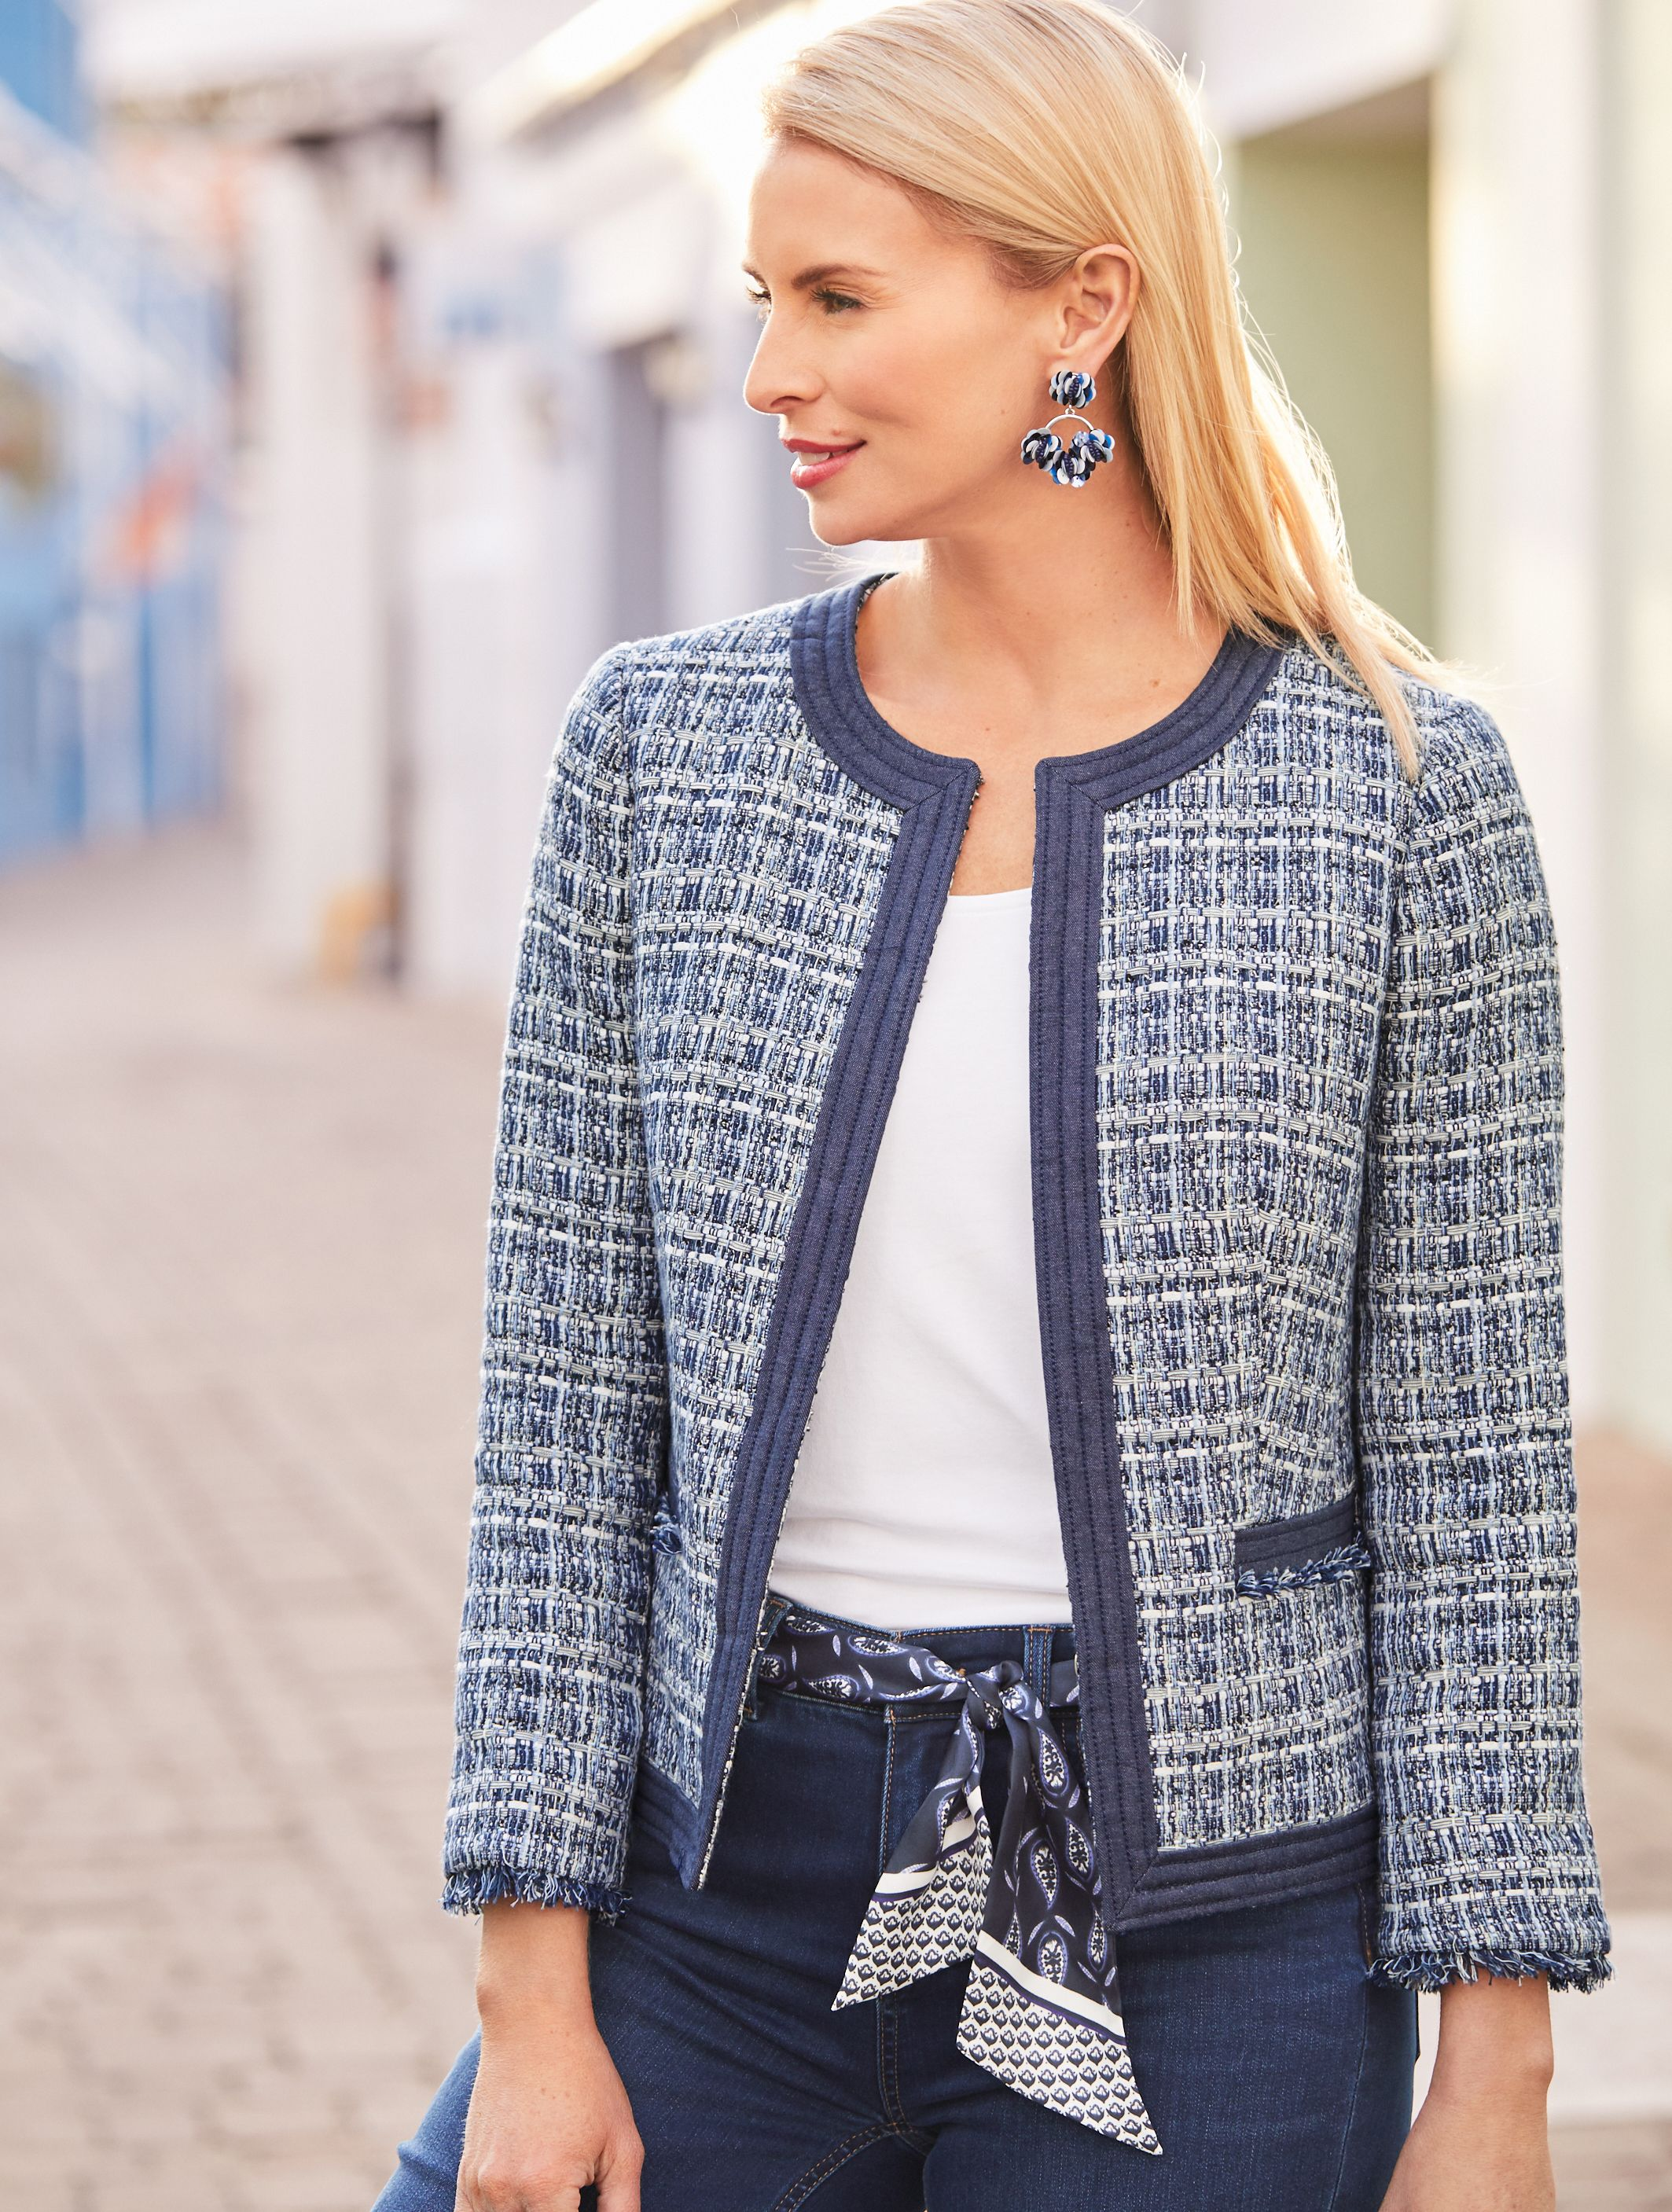 c687f367d0 Sophisticated yet versatile, our reimagined tweed jacket is stunning with  updated chambray trim and delicately fringed details at the cuffs and  pockets.